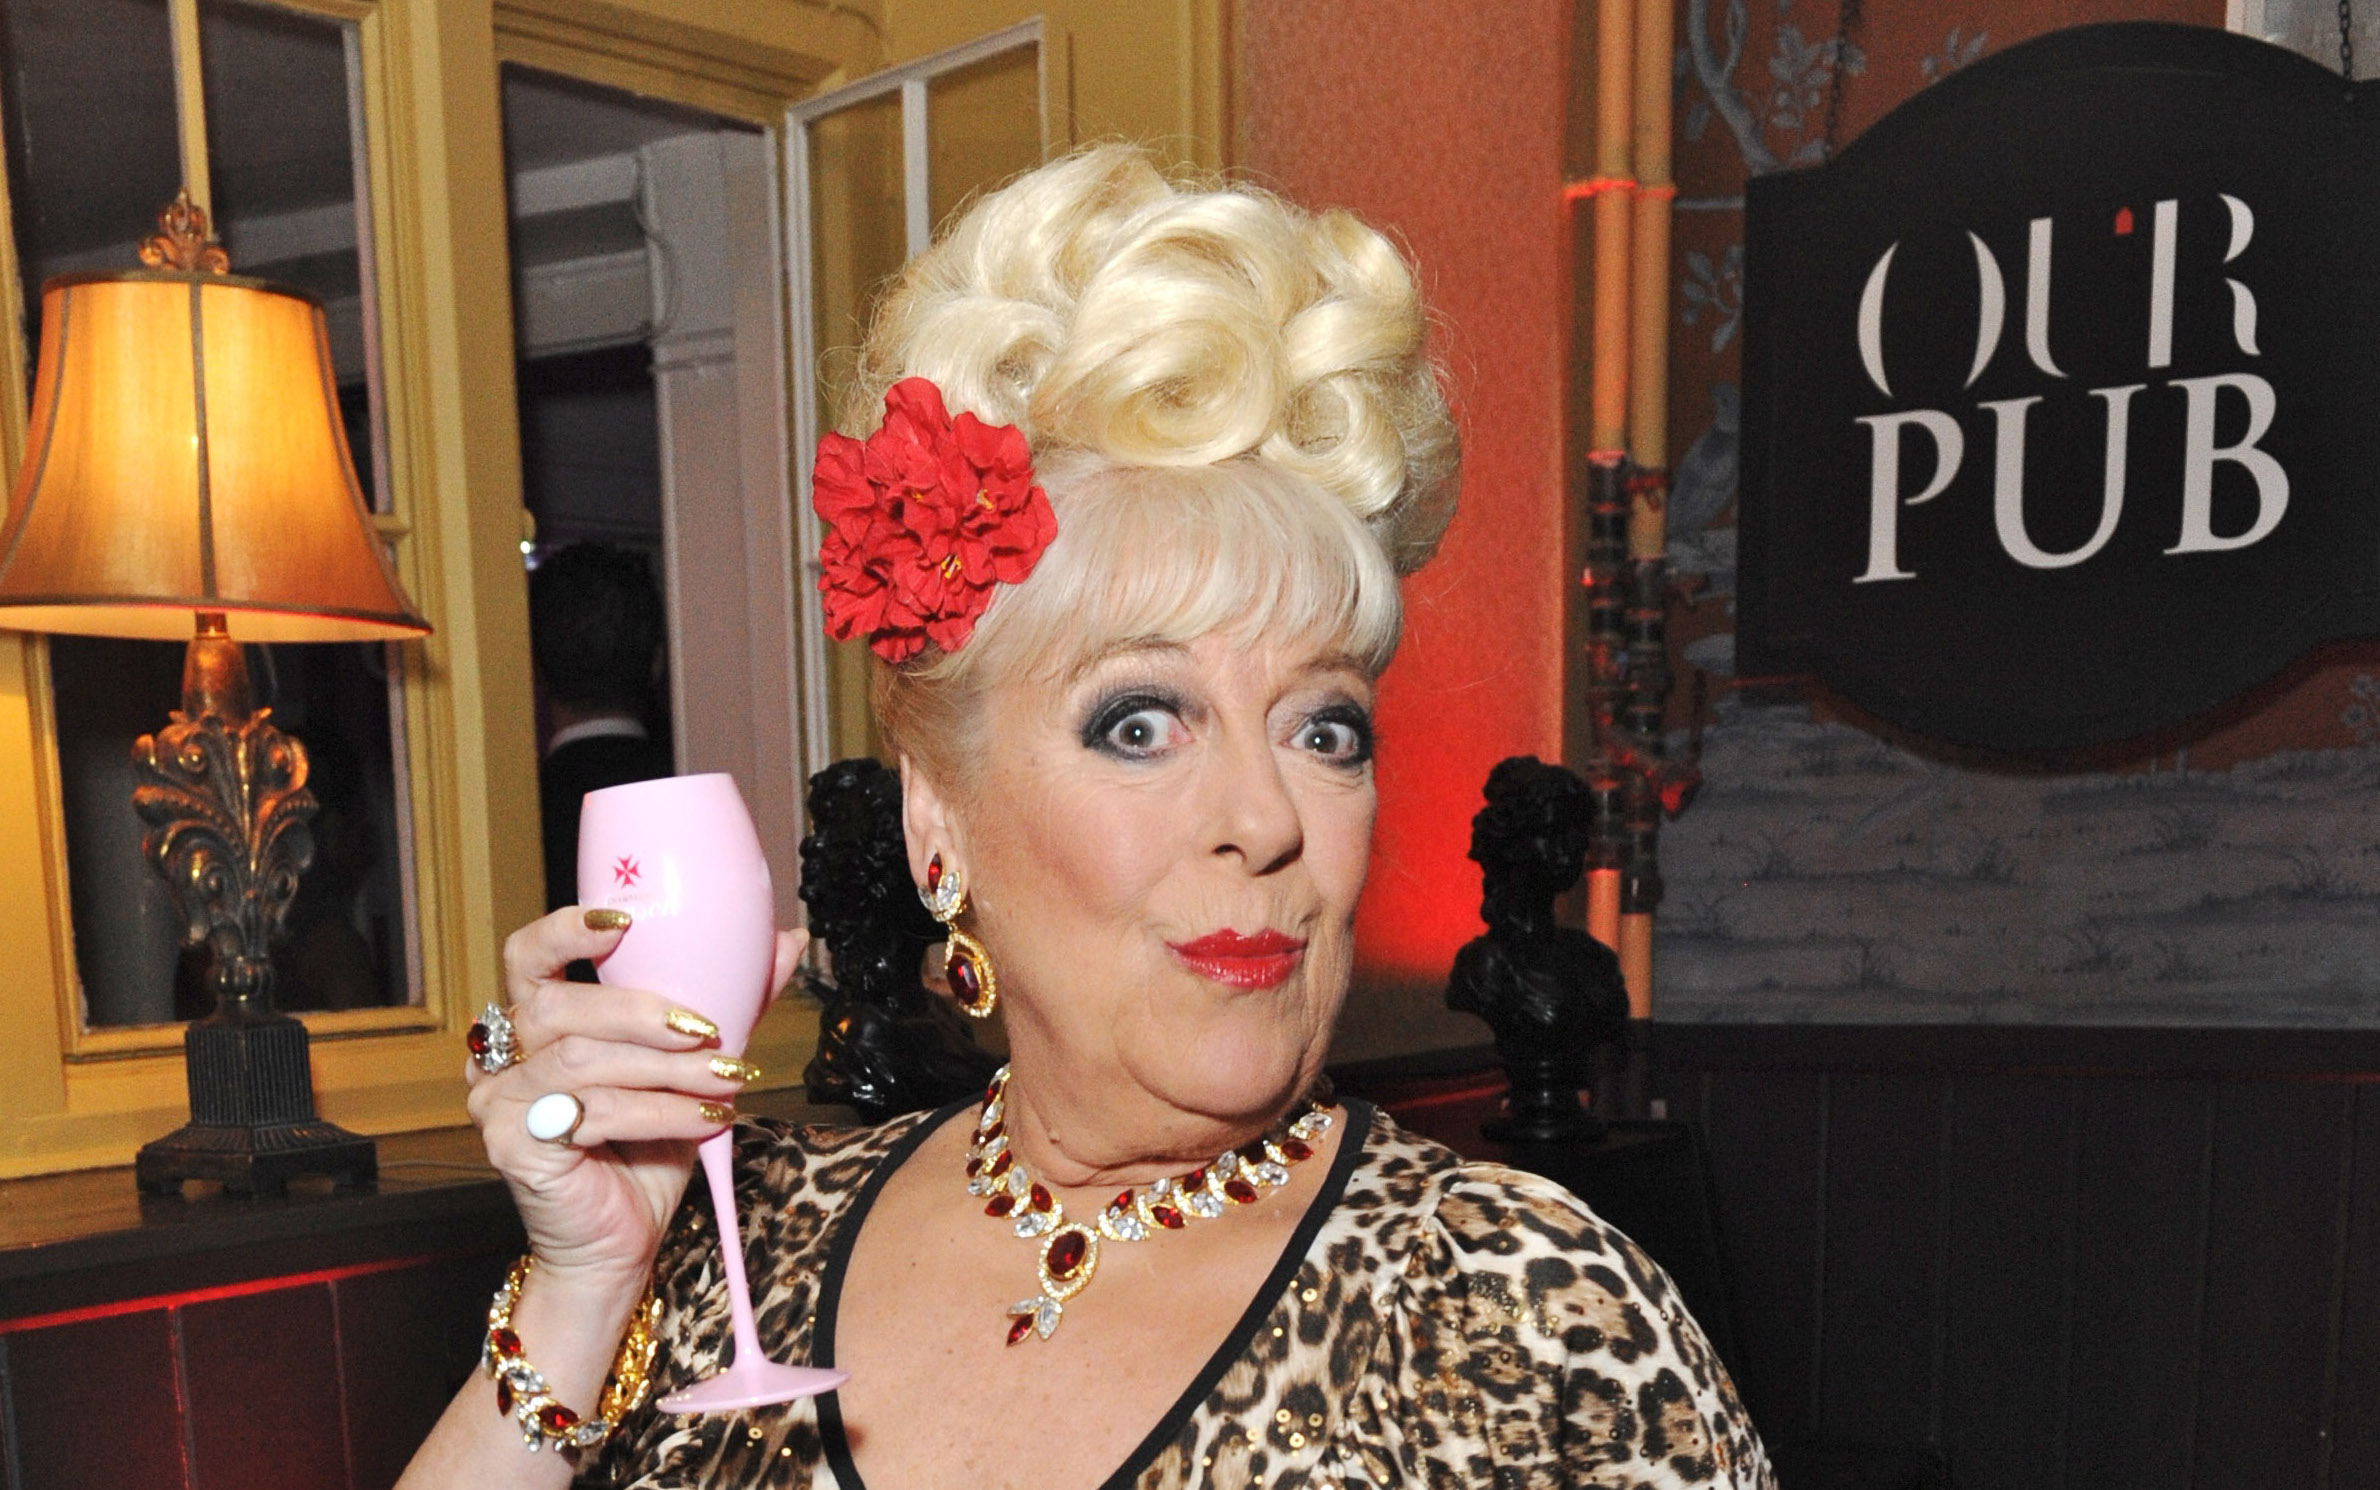 Julie Goodyear attends the launch of Virgin Media TiVo at The House of St Barnabas on March 30, 2011 in London, England. (Photo by JAB Promotions/WireImage)